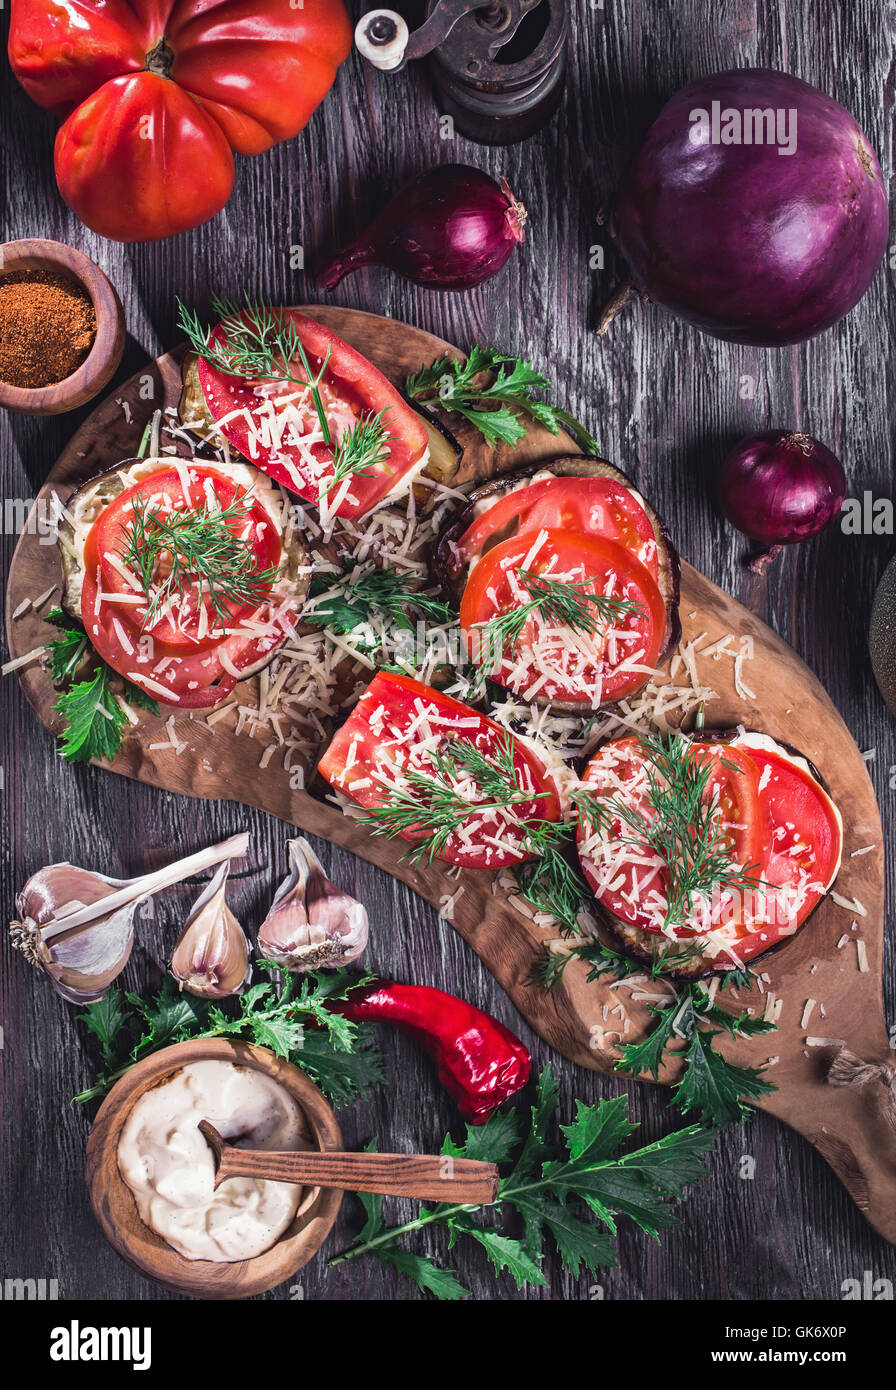 Eggplant and tomato stacks rustic above view - Stock Image